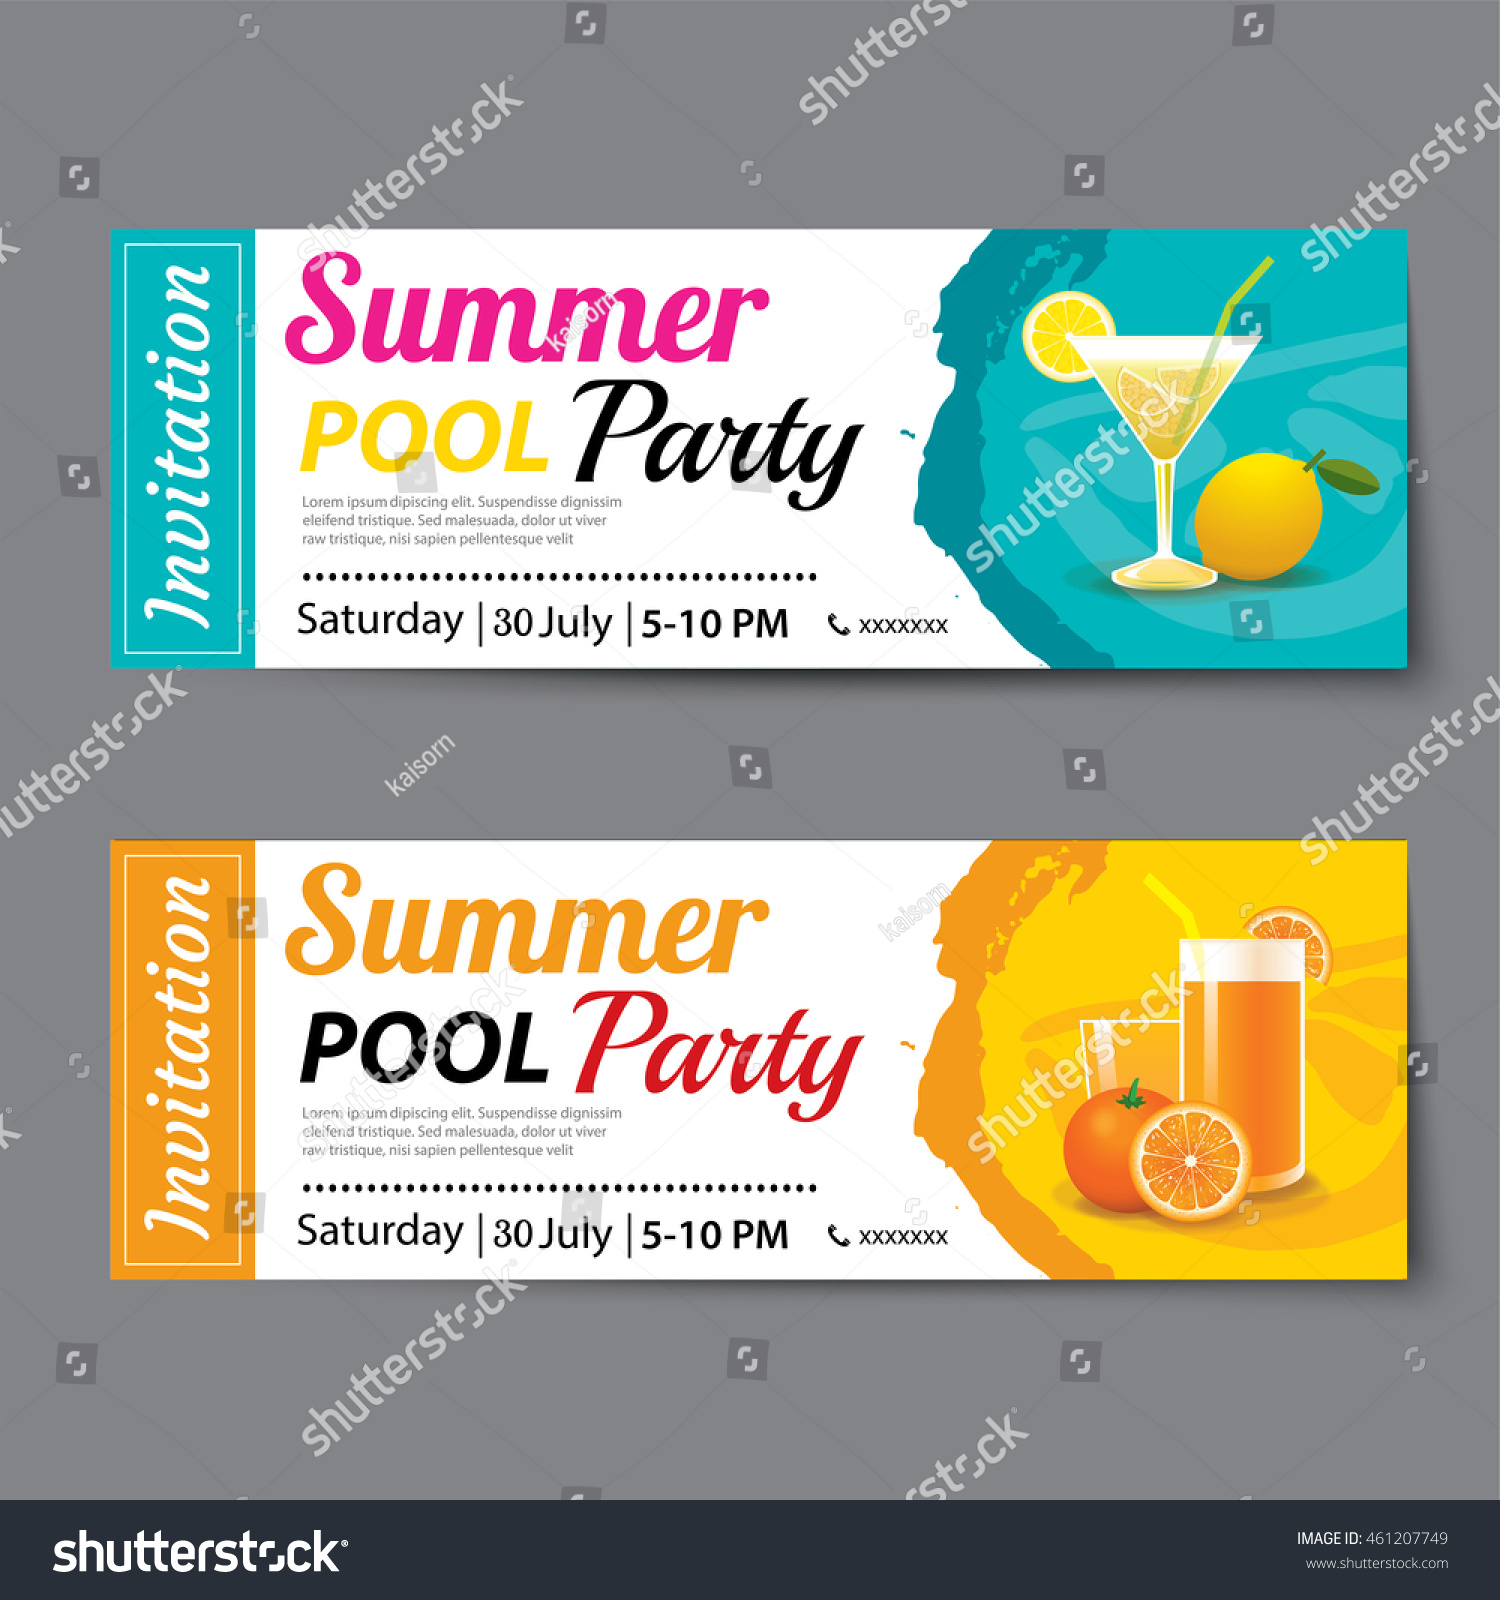 party ticket template paralegal resume objective examples tig star wars birthday party raffle ticket tickets template 1000 stock vector summer pool party ticket template